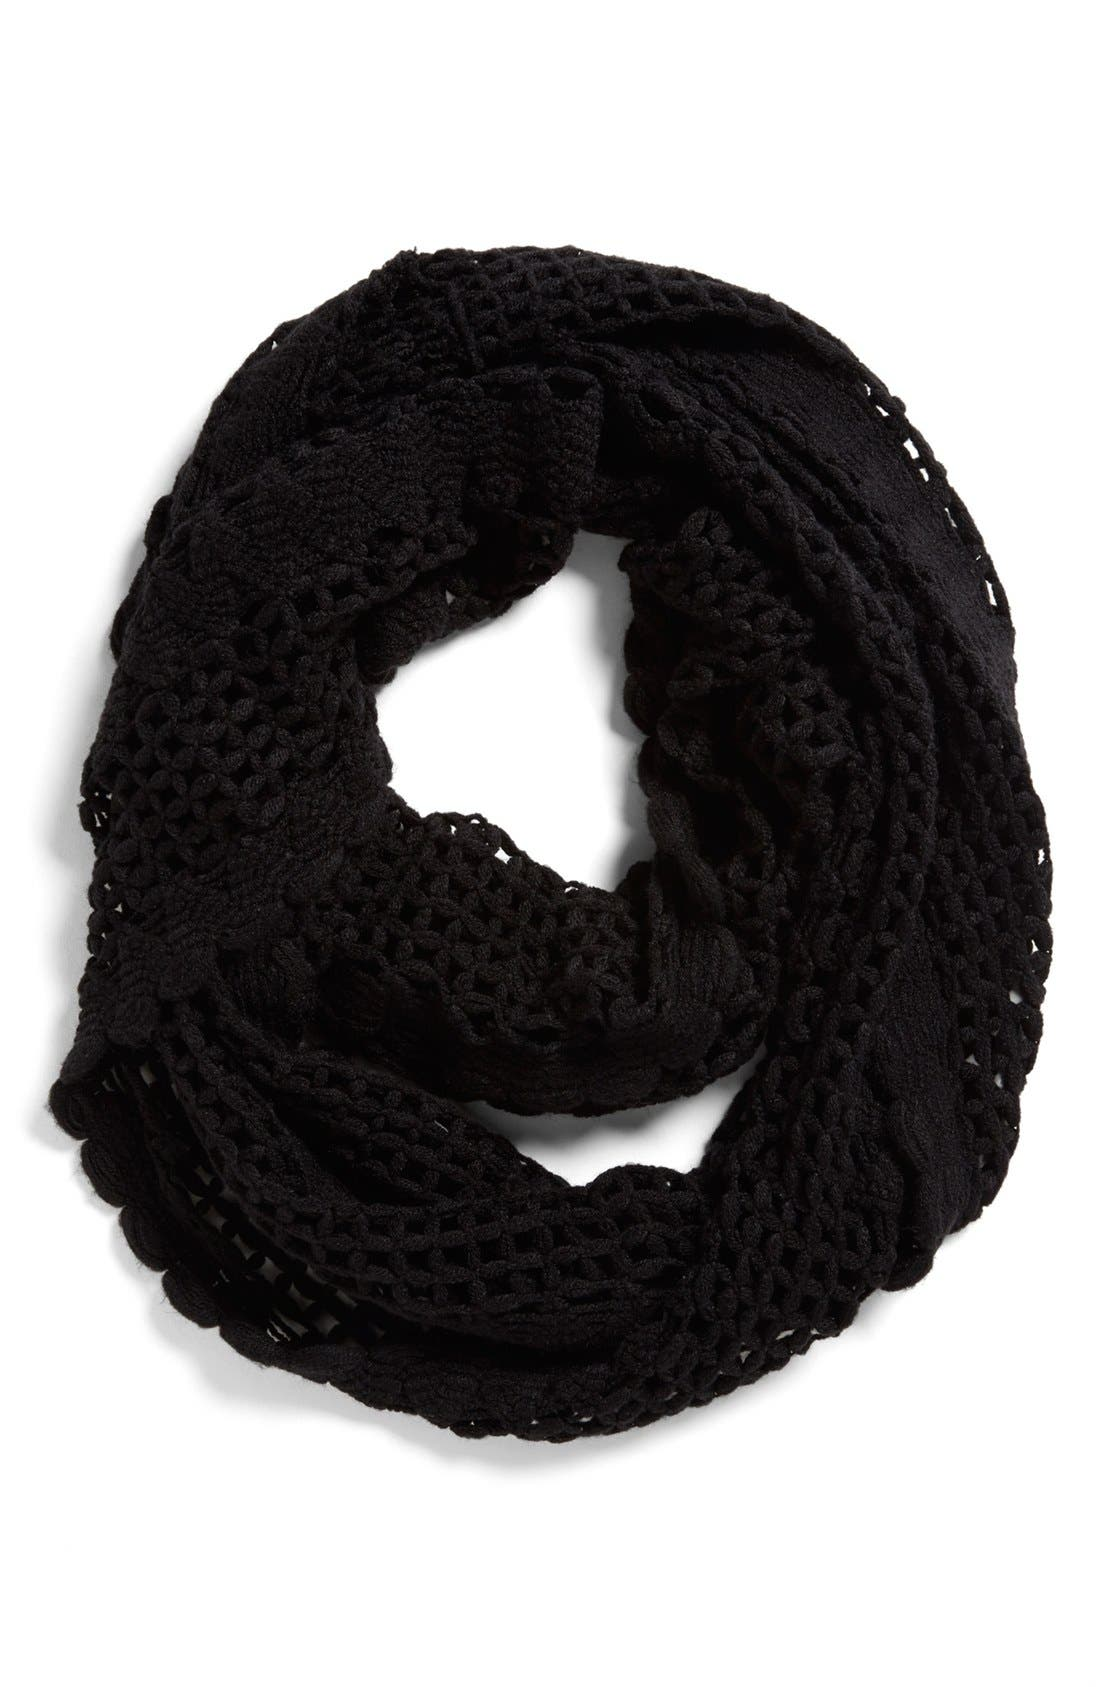 Alternate Image 1 Selected - Tildon Crocheted Infinity Scarf